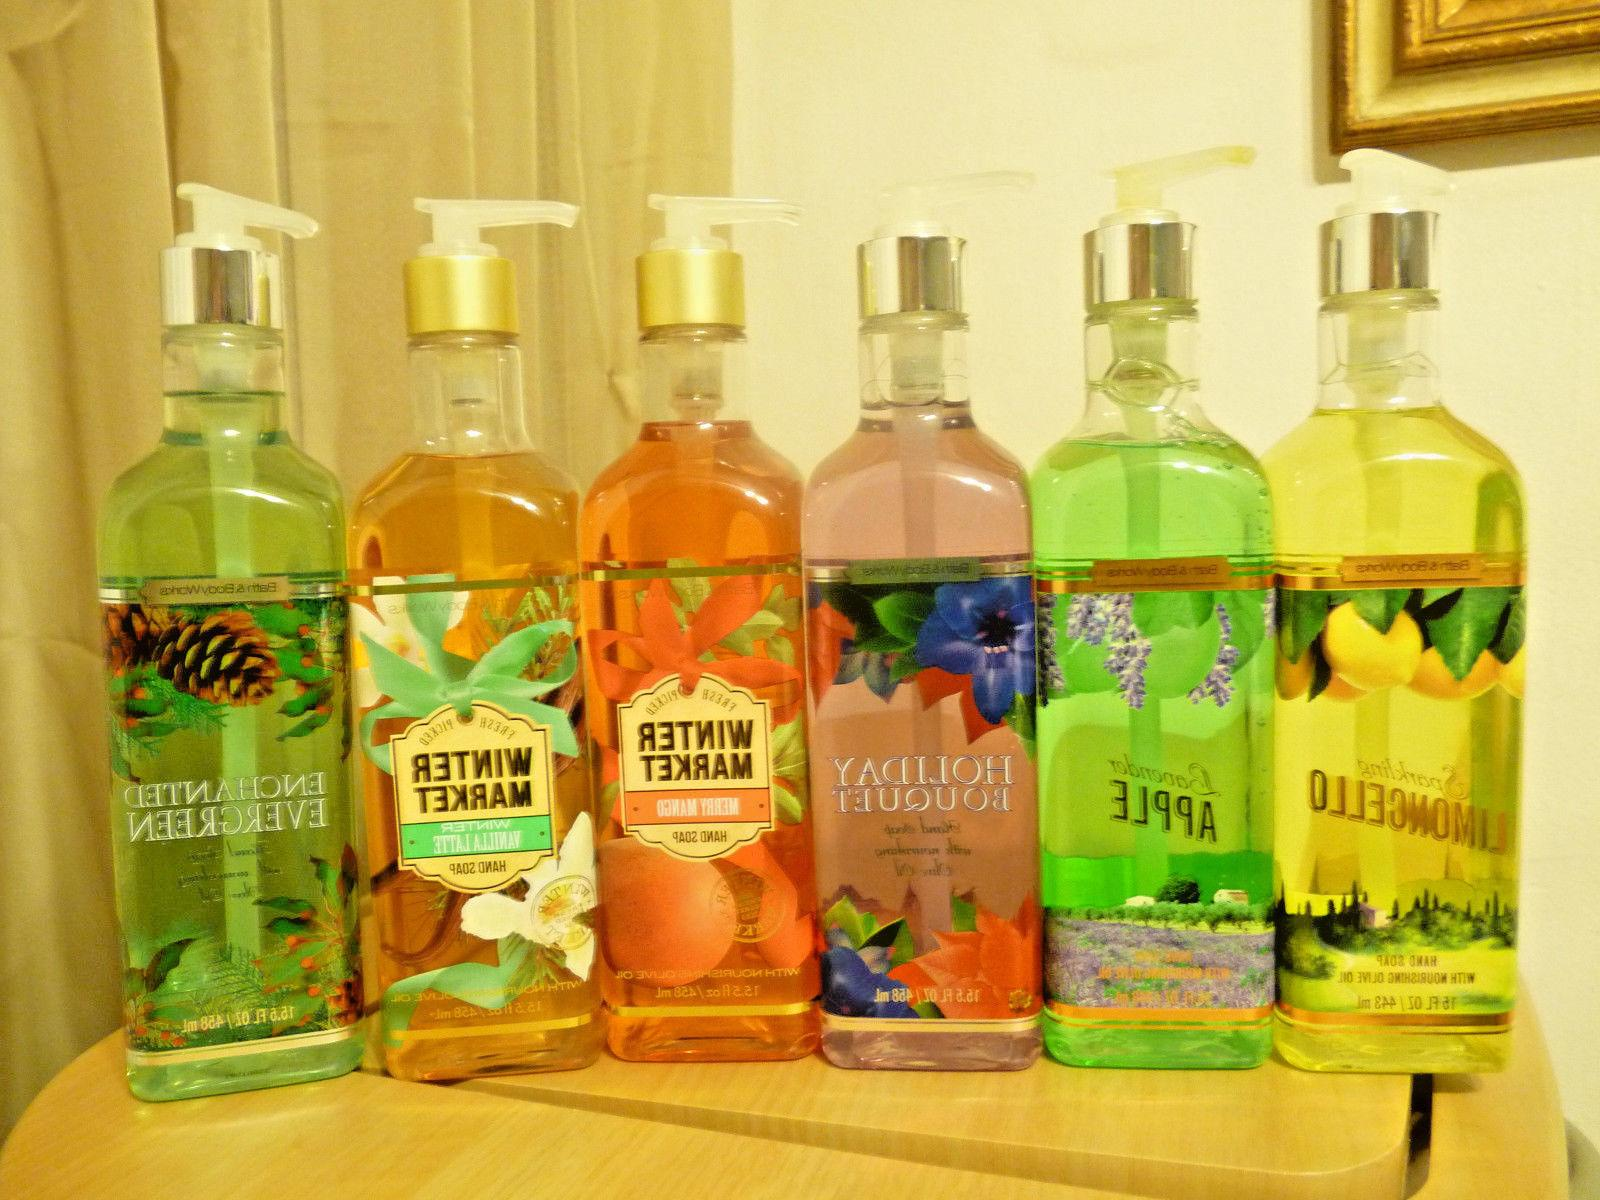 Lot 2 Bath & Body Works Hand Soap w/ Nourishing Olive Oil BI